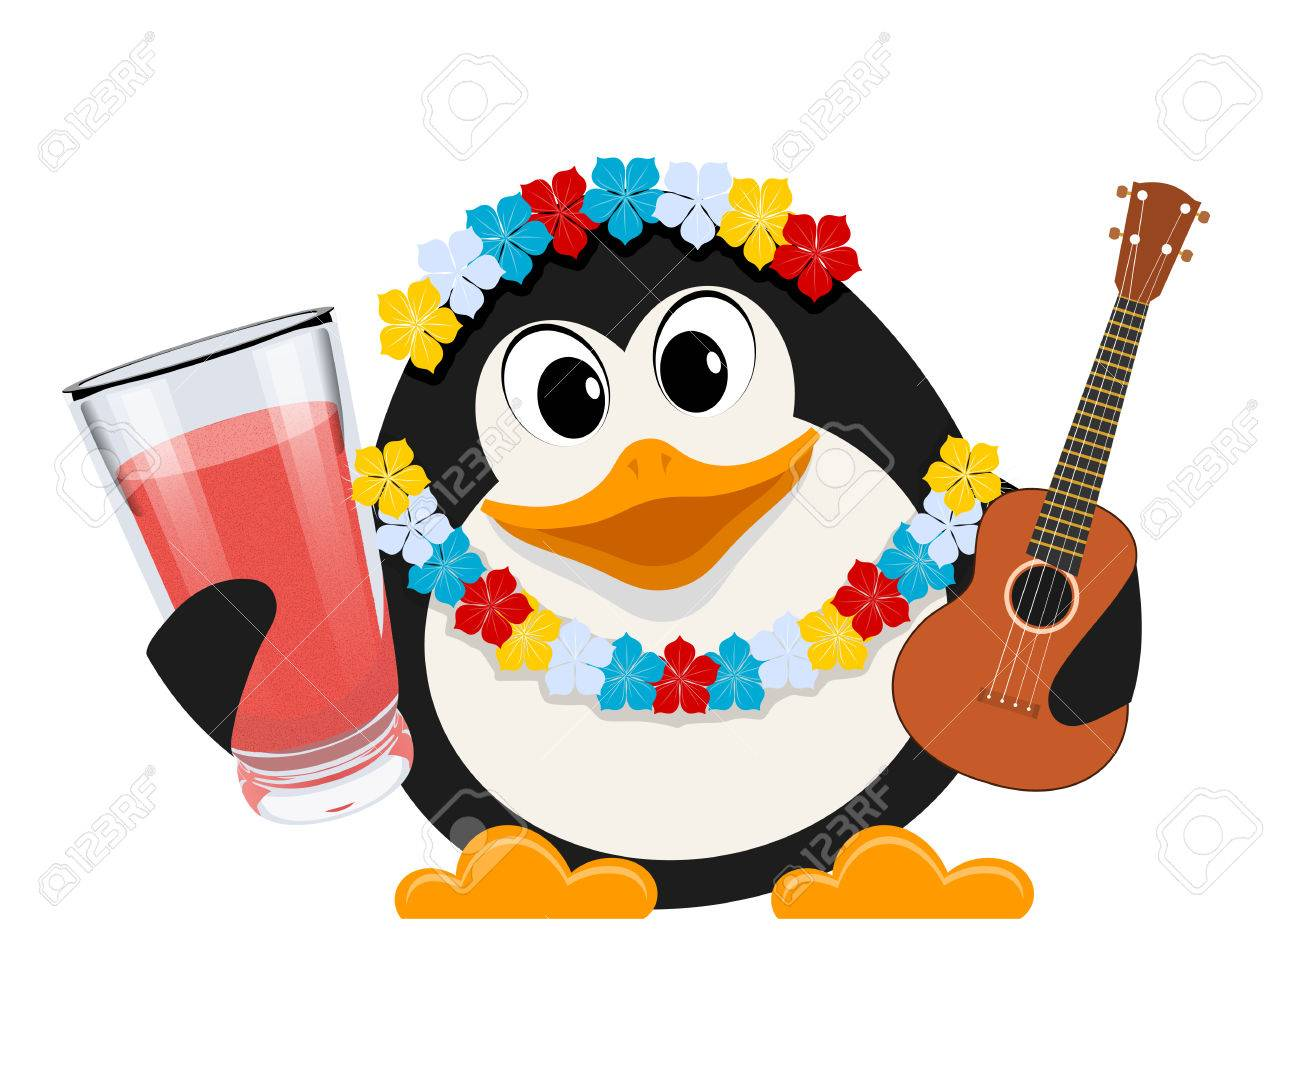 Holidays in hawaii cartoon style color image of a small cute holidays in hawaii cartoon style color image of a small cute penguin with garlands of izmirmasajfo Images